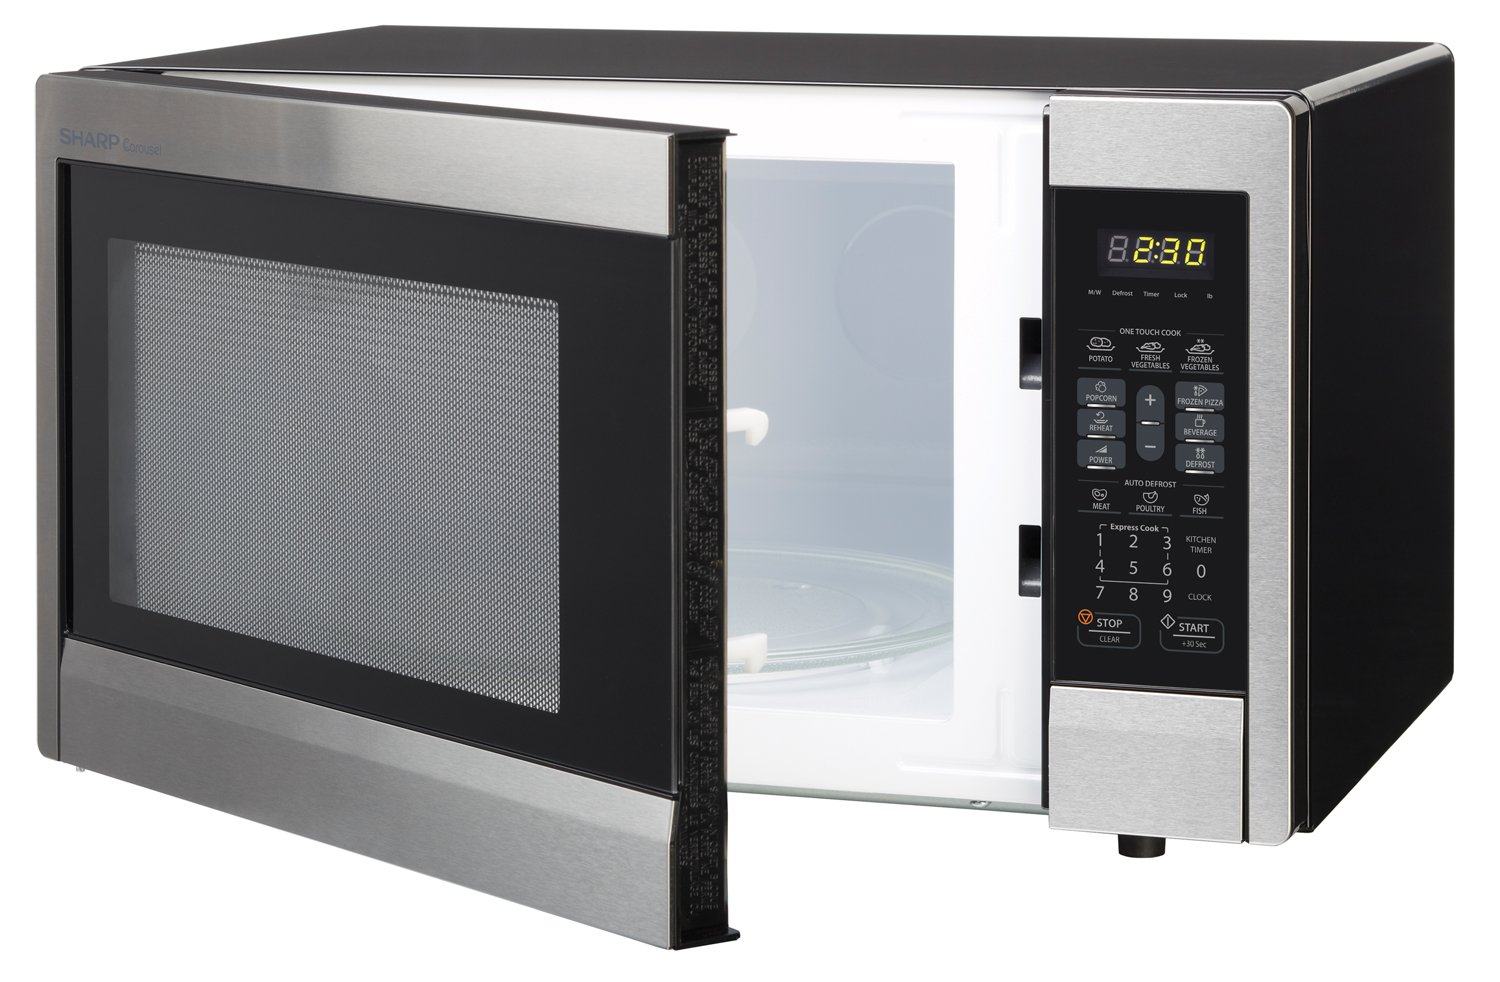 Sharp 1.000 W Countertop microondas horno, 1.1 pies cúbicos: Amazon.es: Hogar